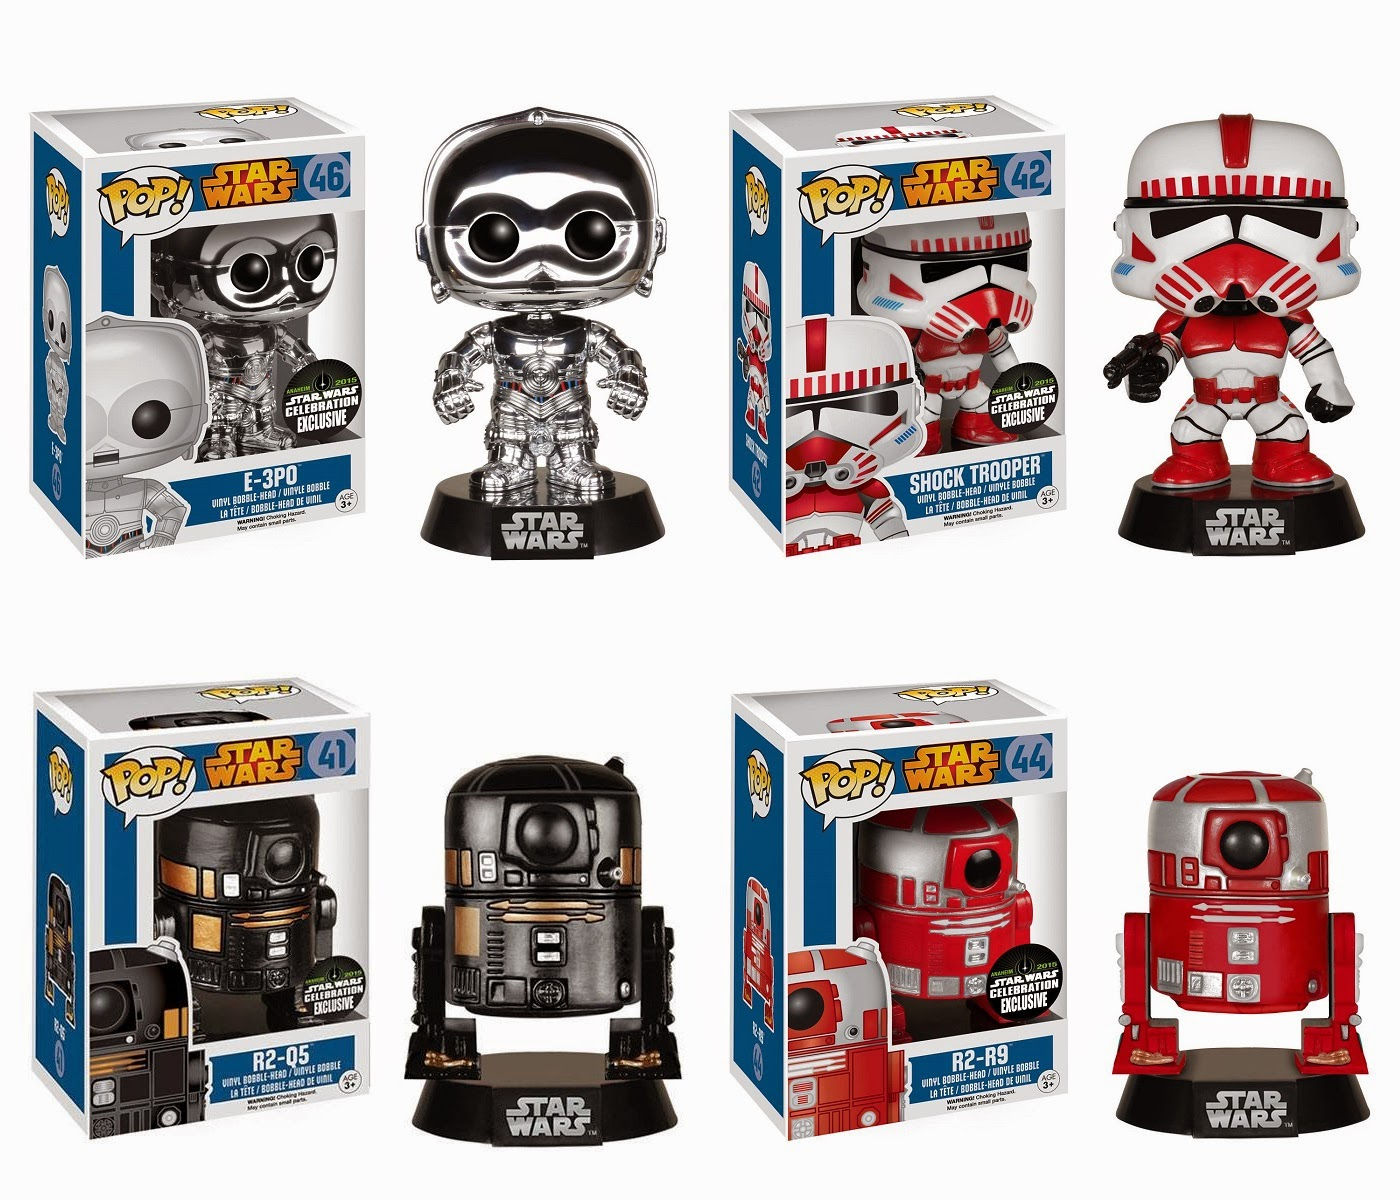 Star Wars Celebration 2015 Exclusive Star Wars Pop! Vinyl Figures Series by Funko - E-3PO, Shock Trooper, R2-Q5 & R2-R9